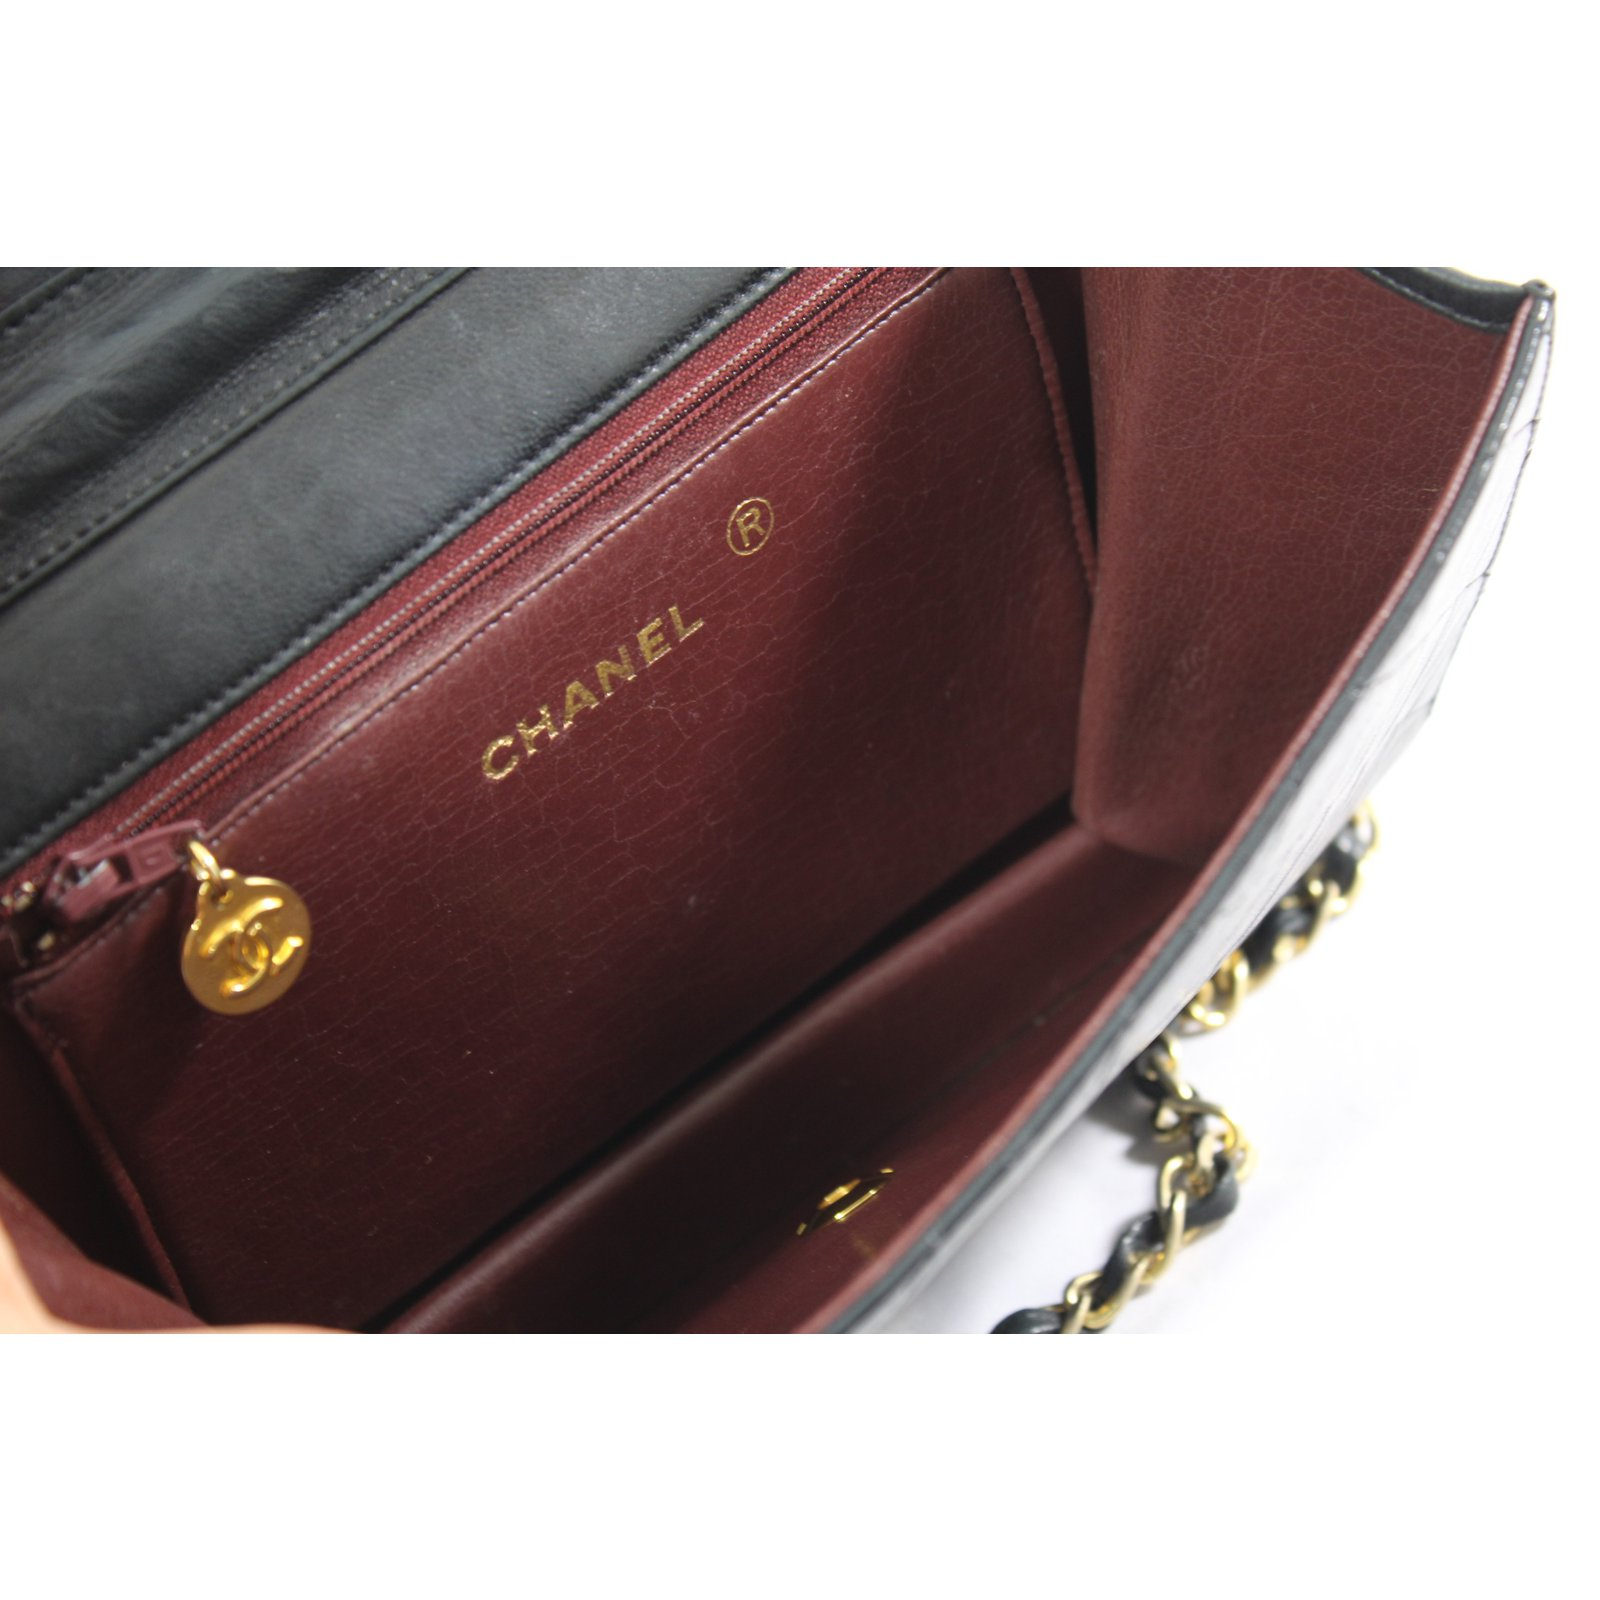 Facebook · Pin This. Chanel mademoiselle Handbags Leather Black ref.68177 b6d3e2756ed3e